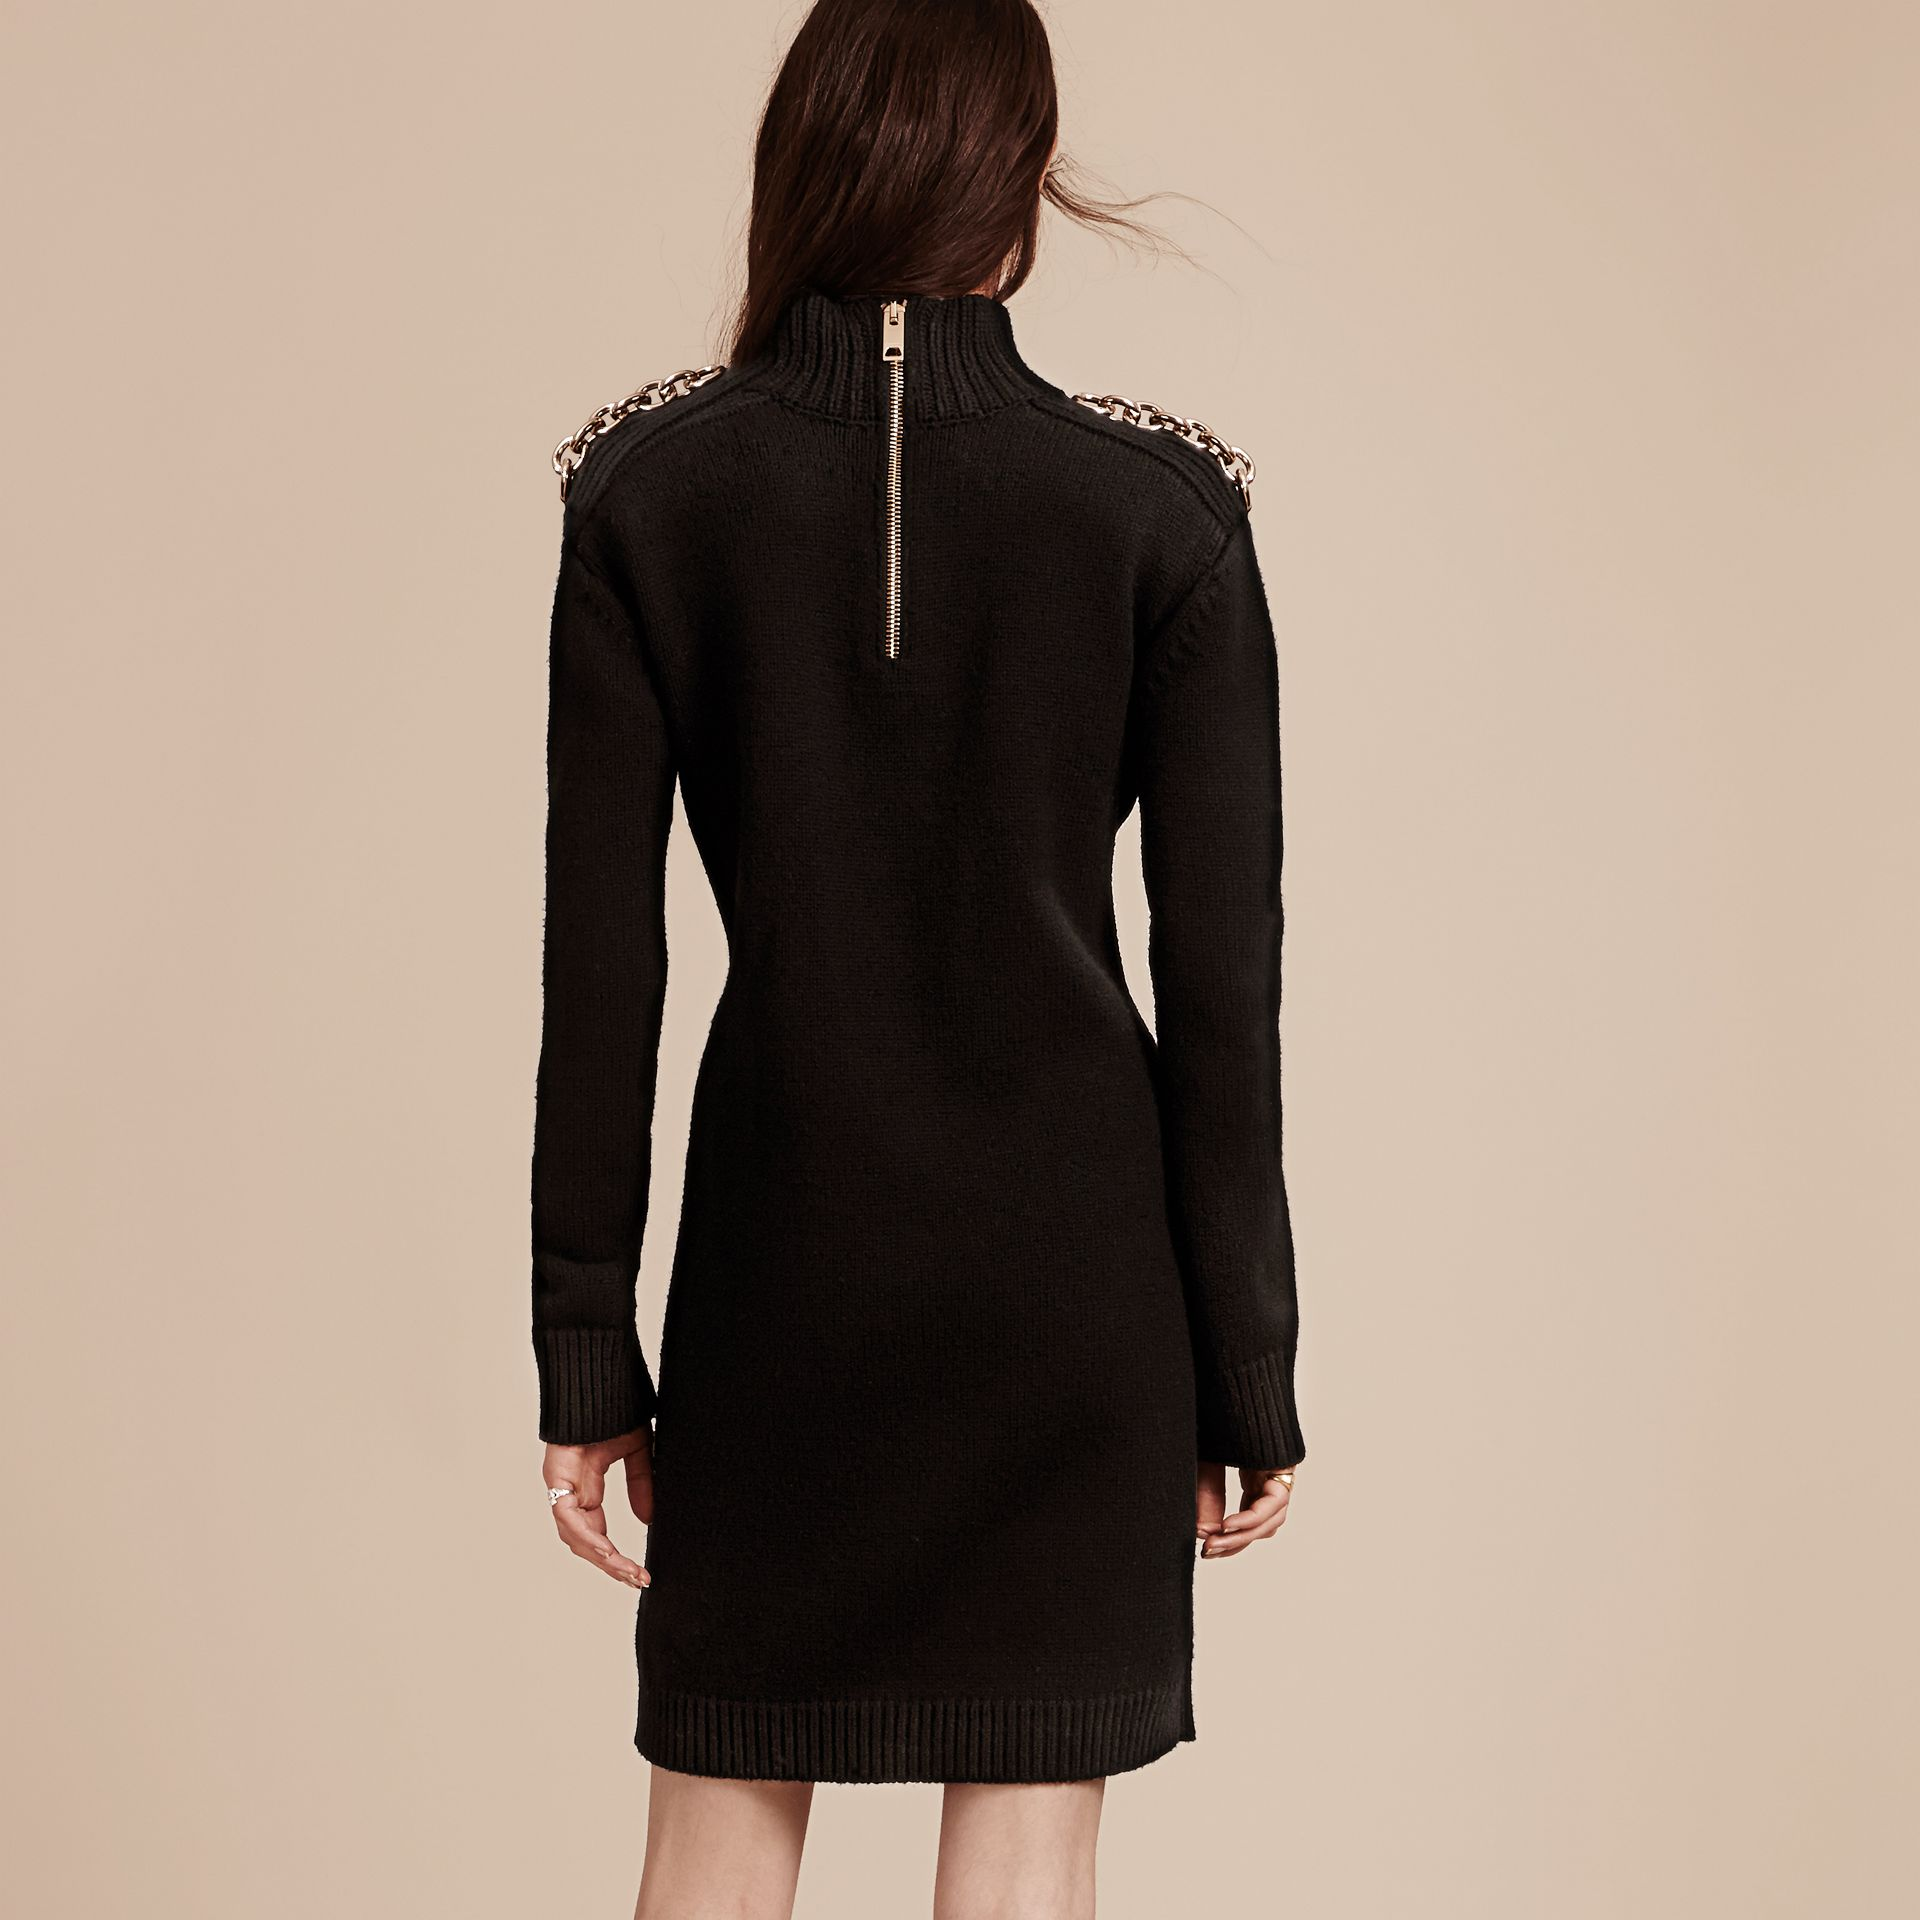 Black Chain Detail Wool Cashmere High-neck Dress Black - gallery image 3